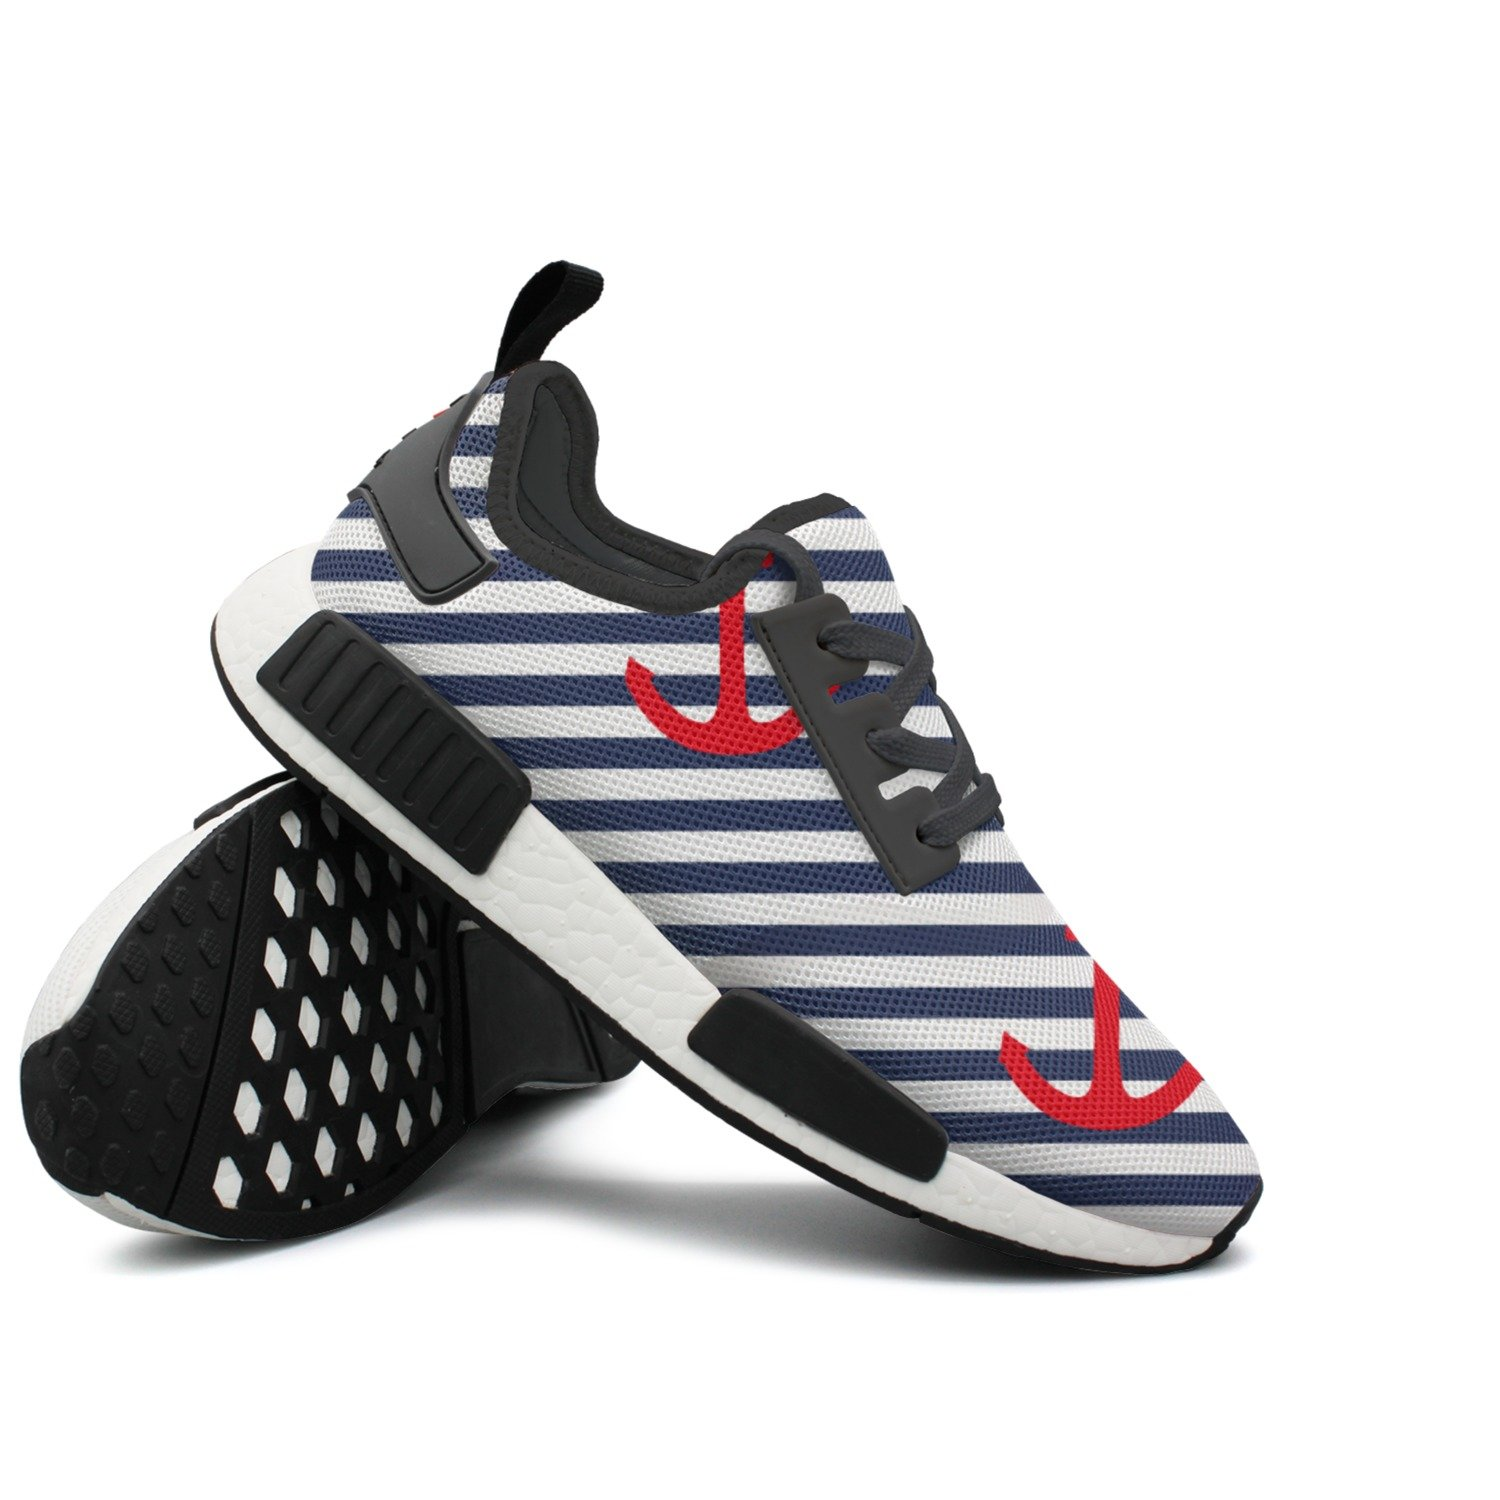 CVOIREWKLL Sailor Stripe Red Anchor Non-slip Classic Stylish Print Running Shoes